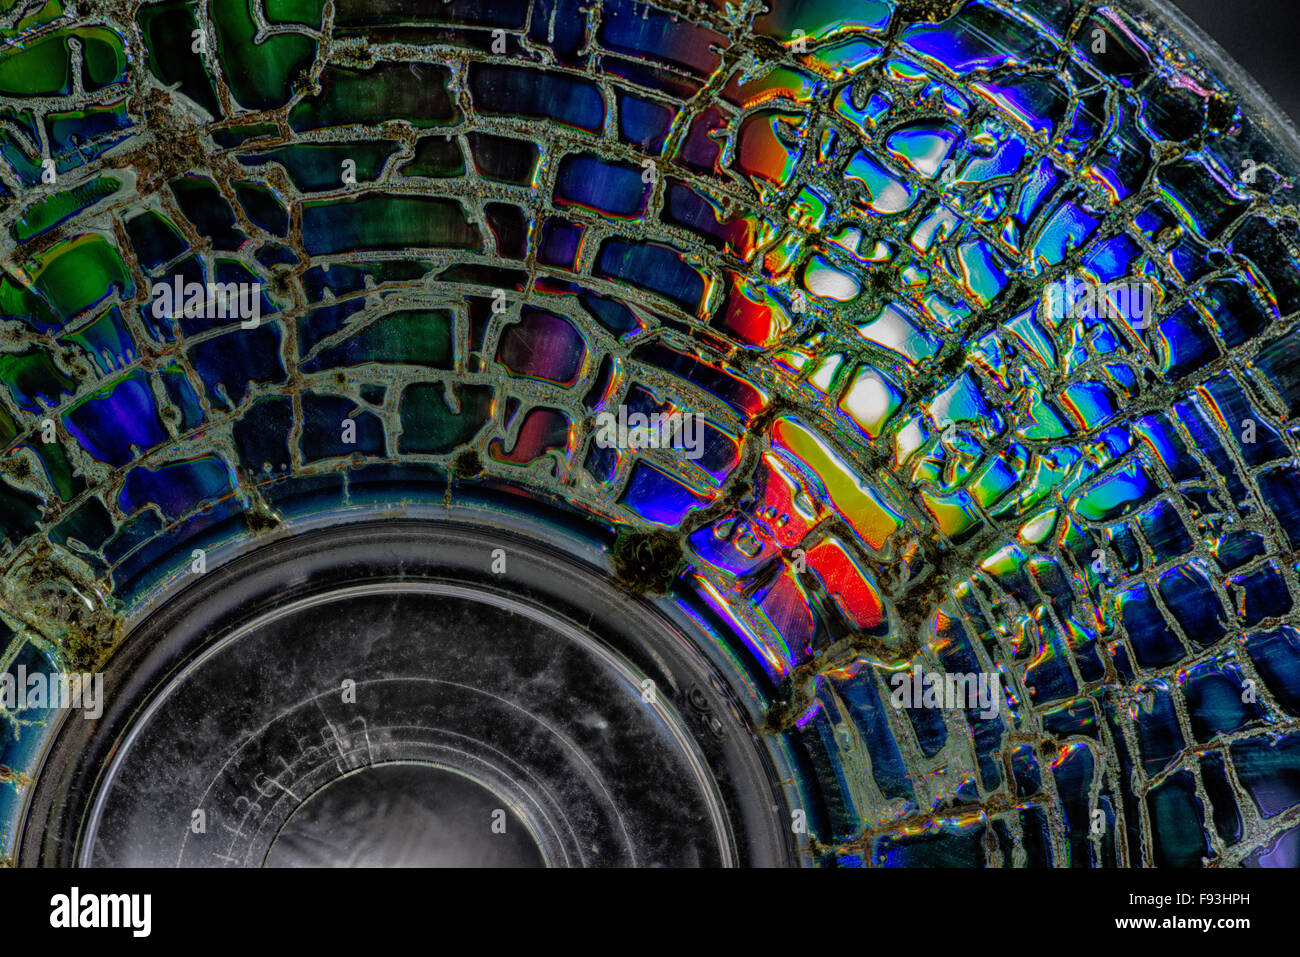 corrupted and lost data from archival back up system dvd or cd ruined failed information storage error retrievable - Stock Image